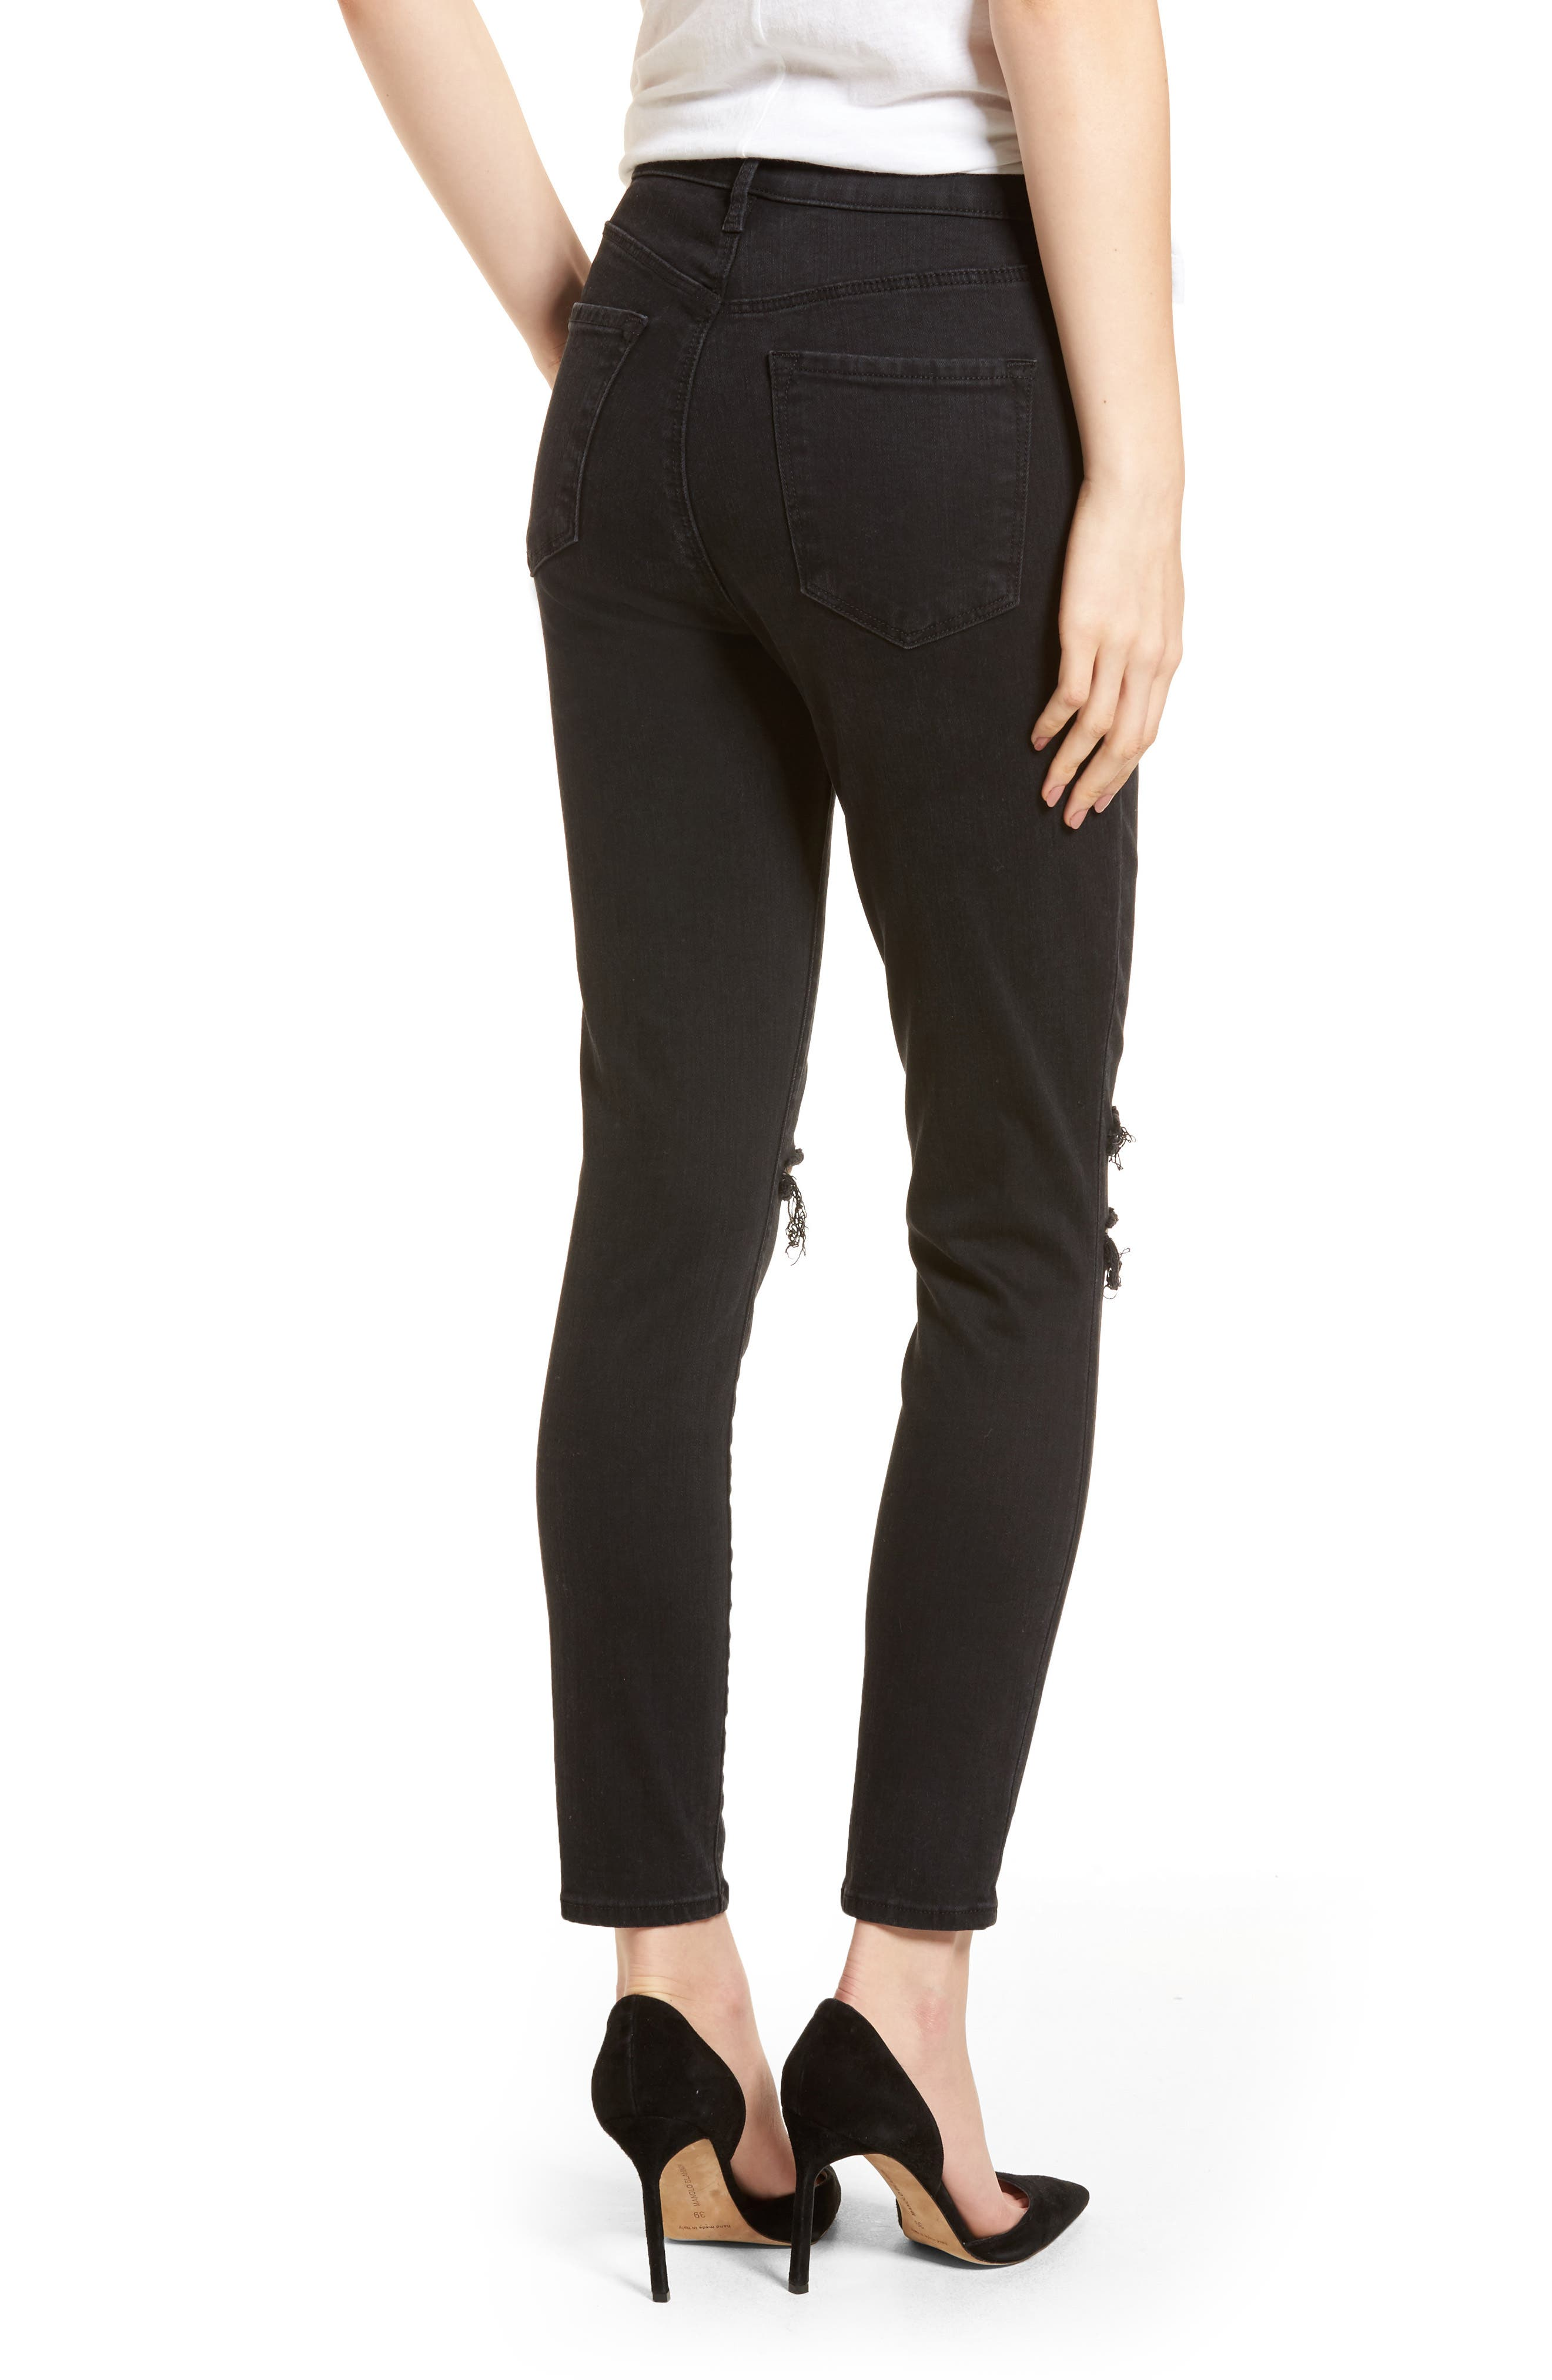 Alternate Image 2  - J Brand Alana High Waist Ankle Skinny Jeans (Black Mercy) (Nordstrom Exclusive)